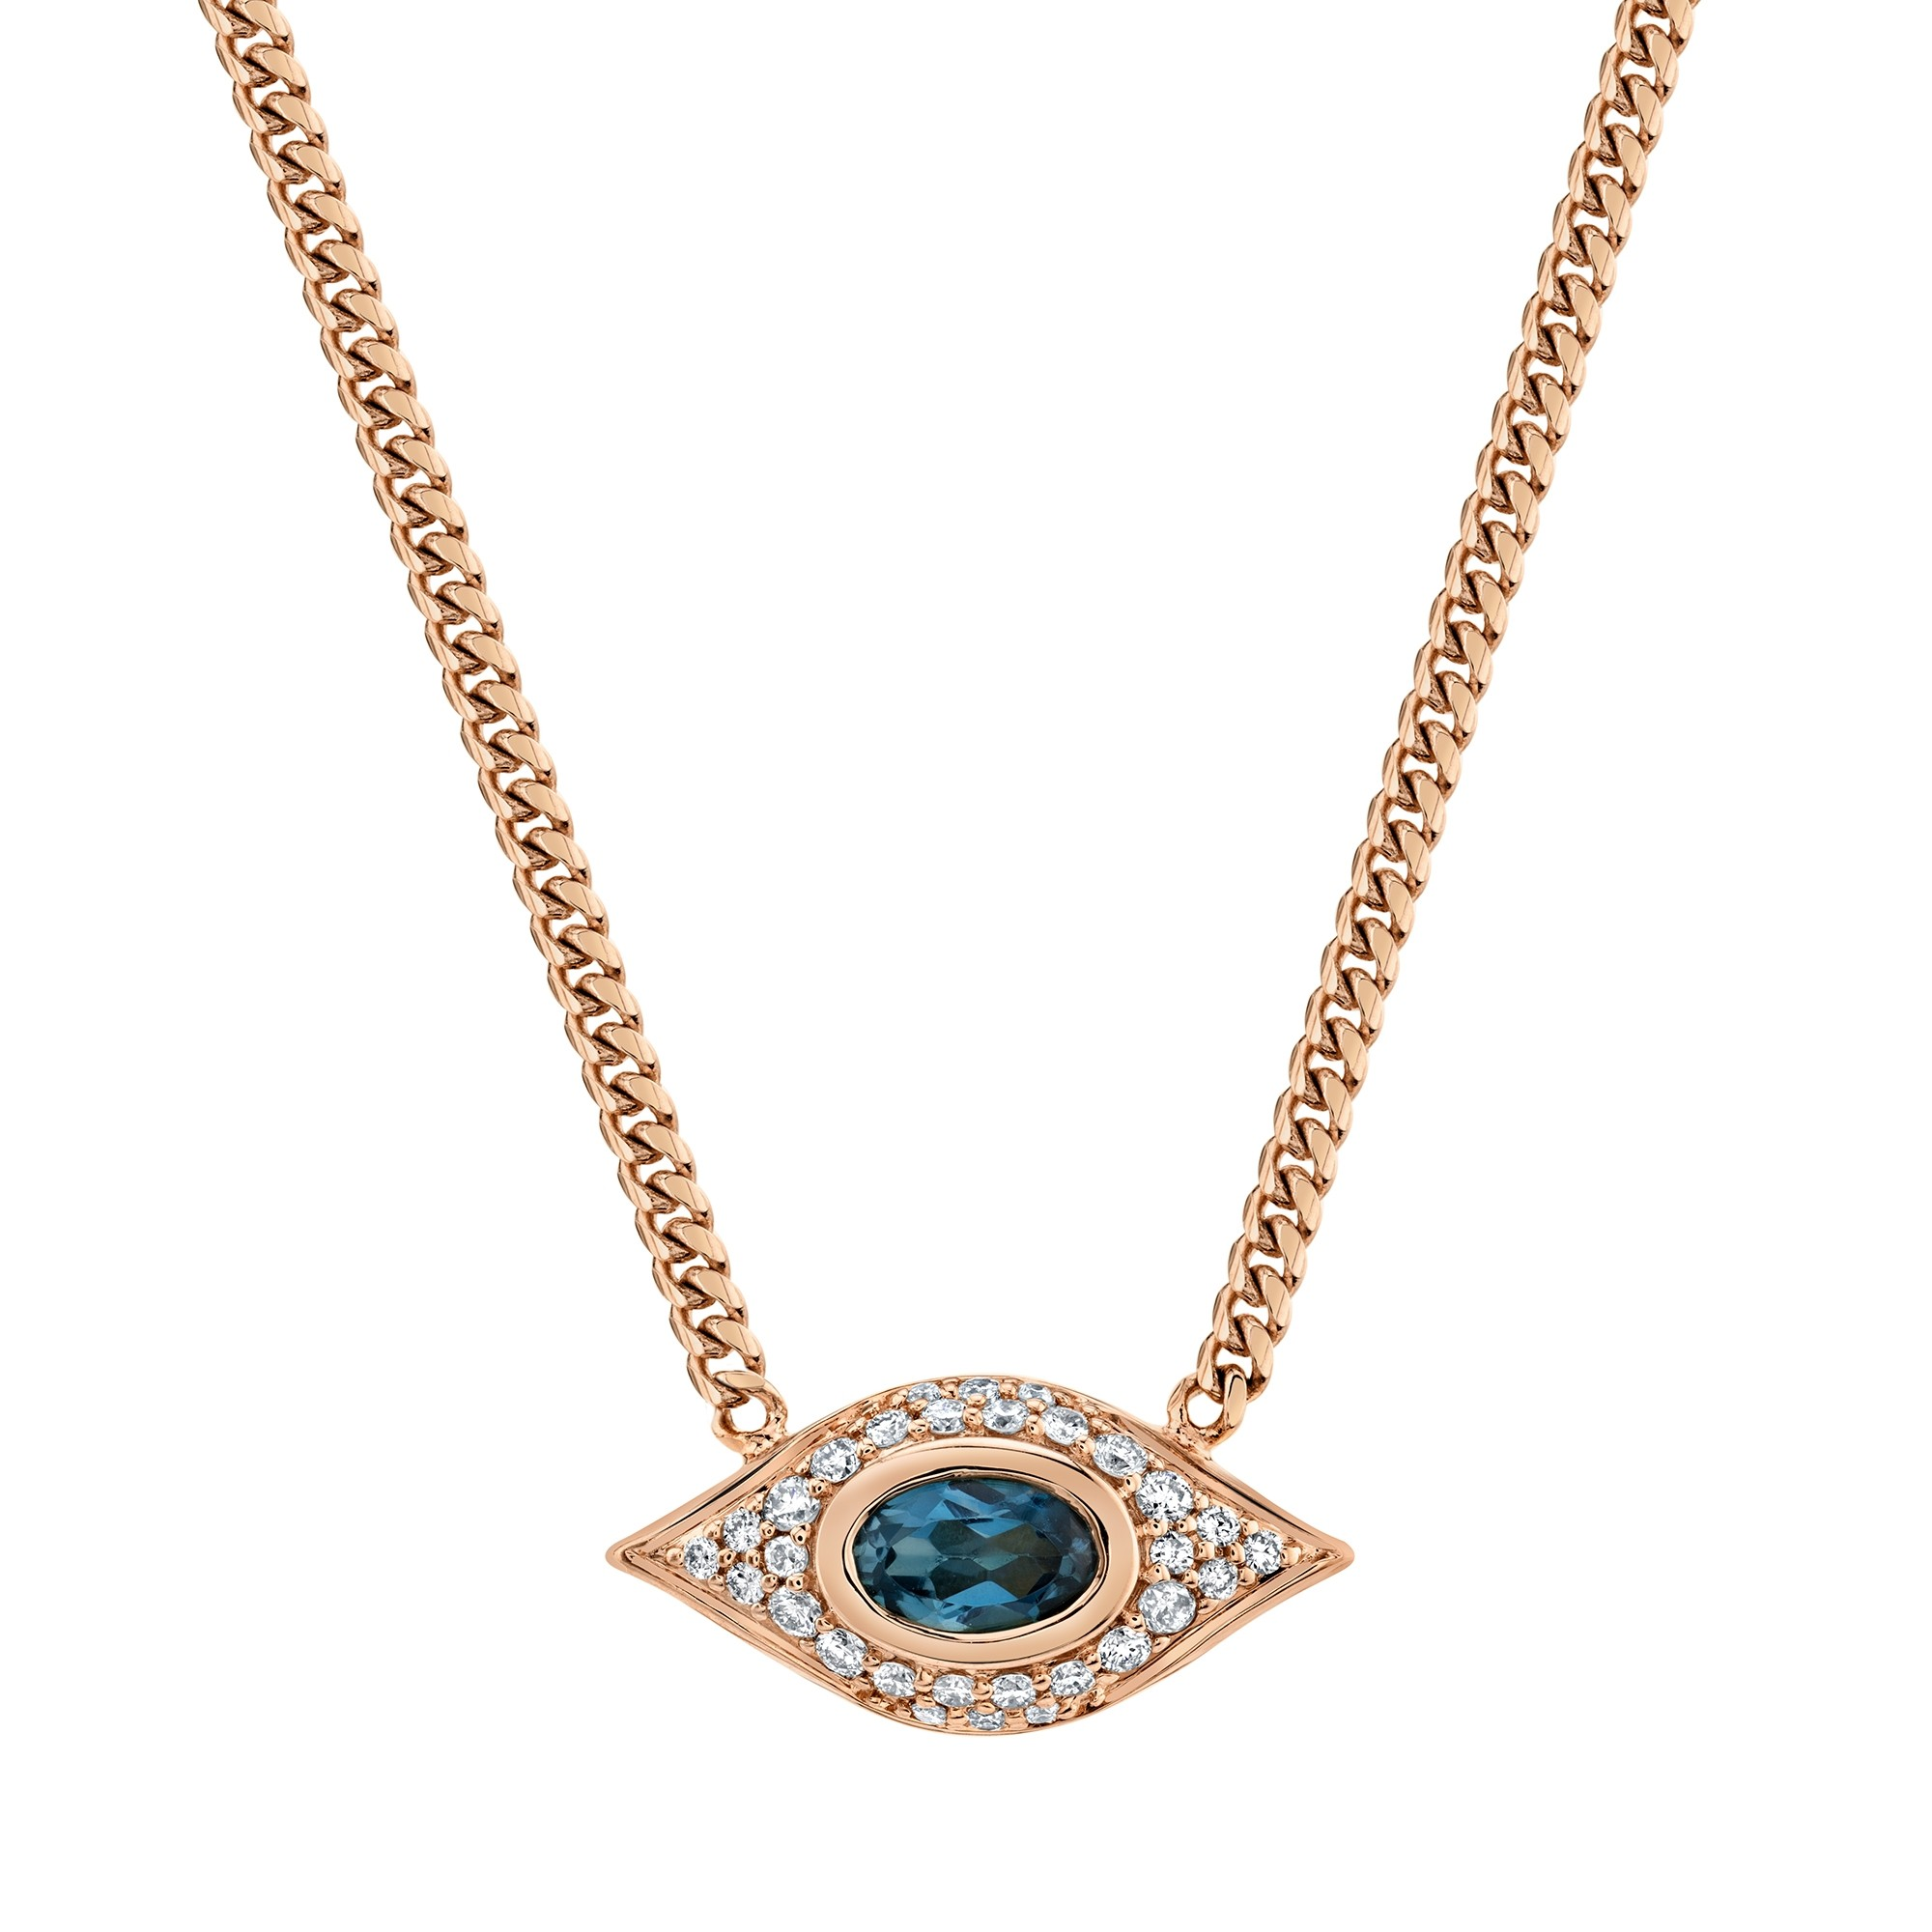 14k Rose Gold Diamond Oval Blue Topaz Evil Eye Necklace